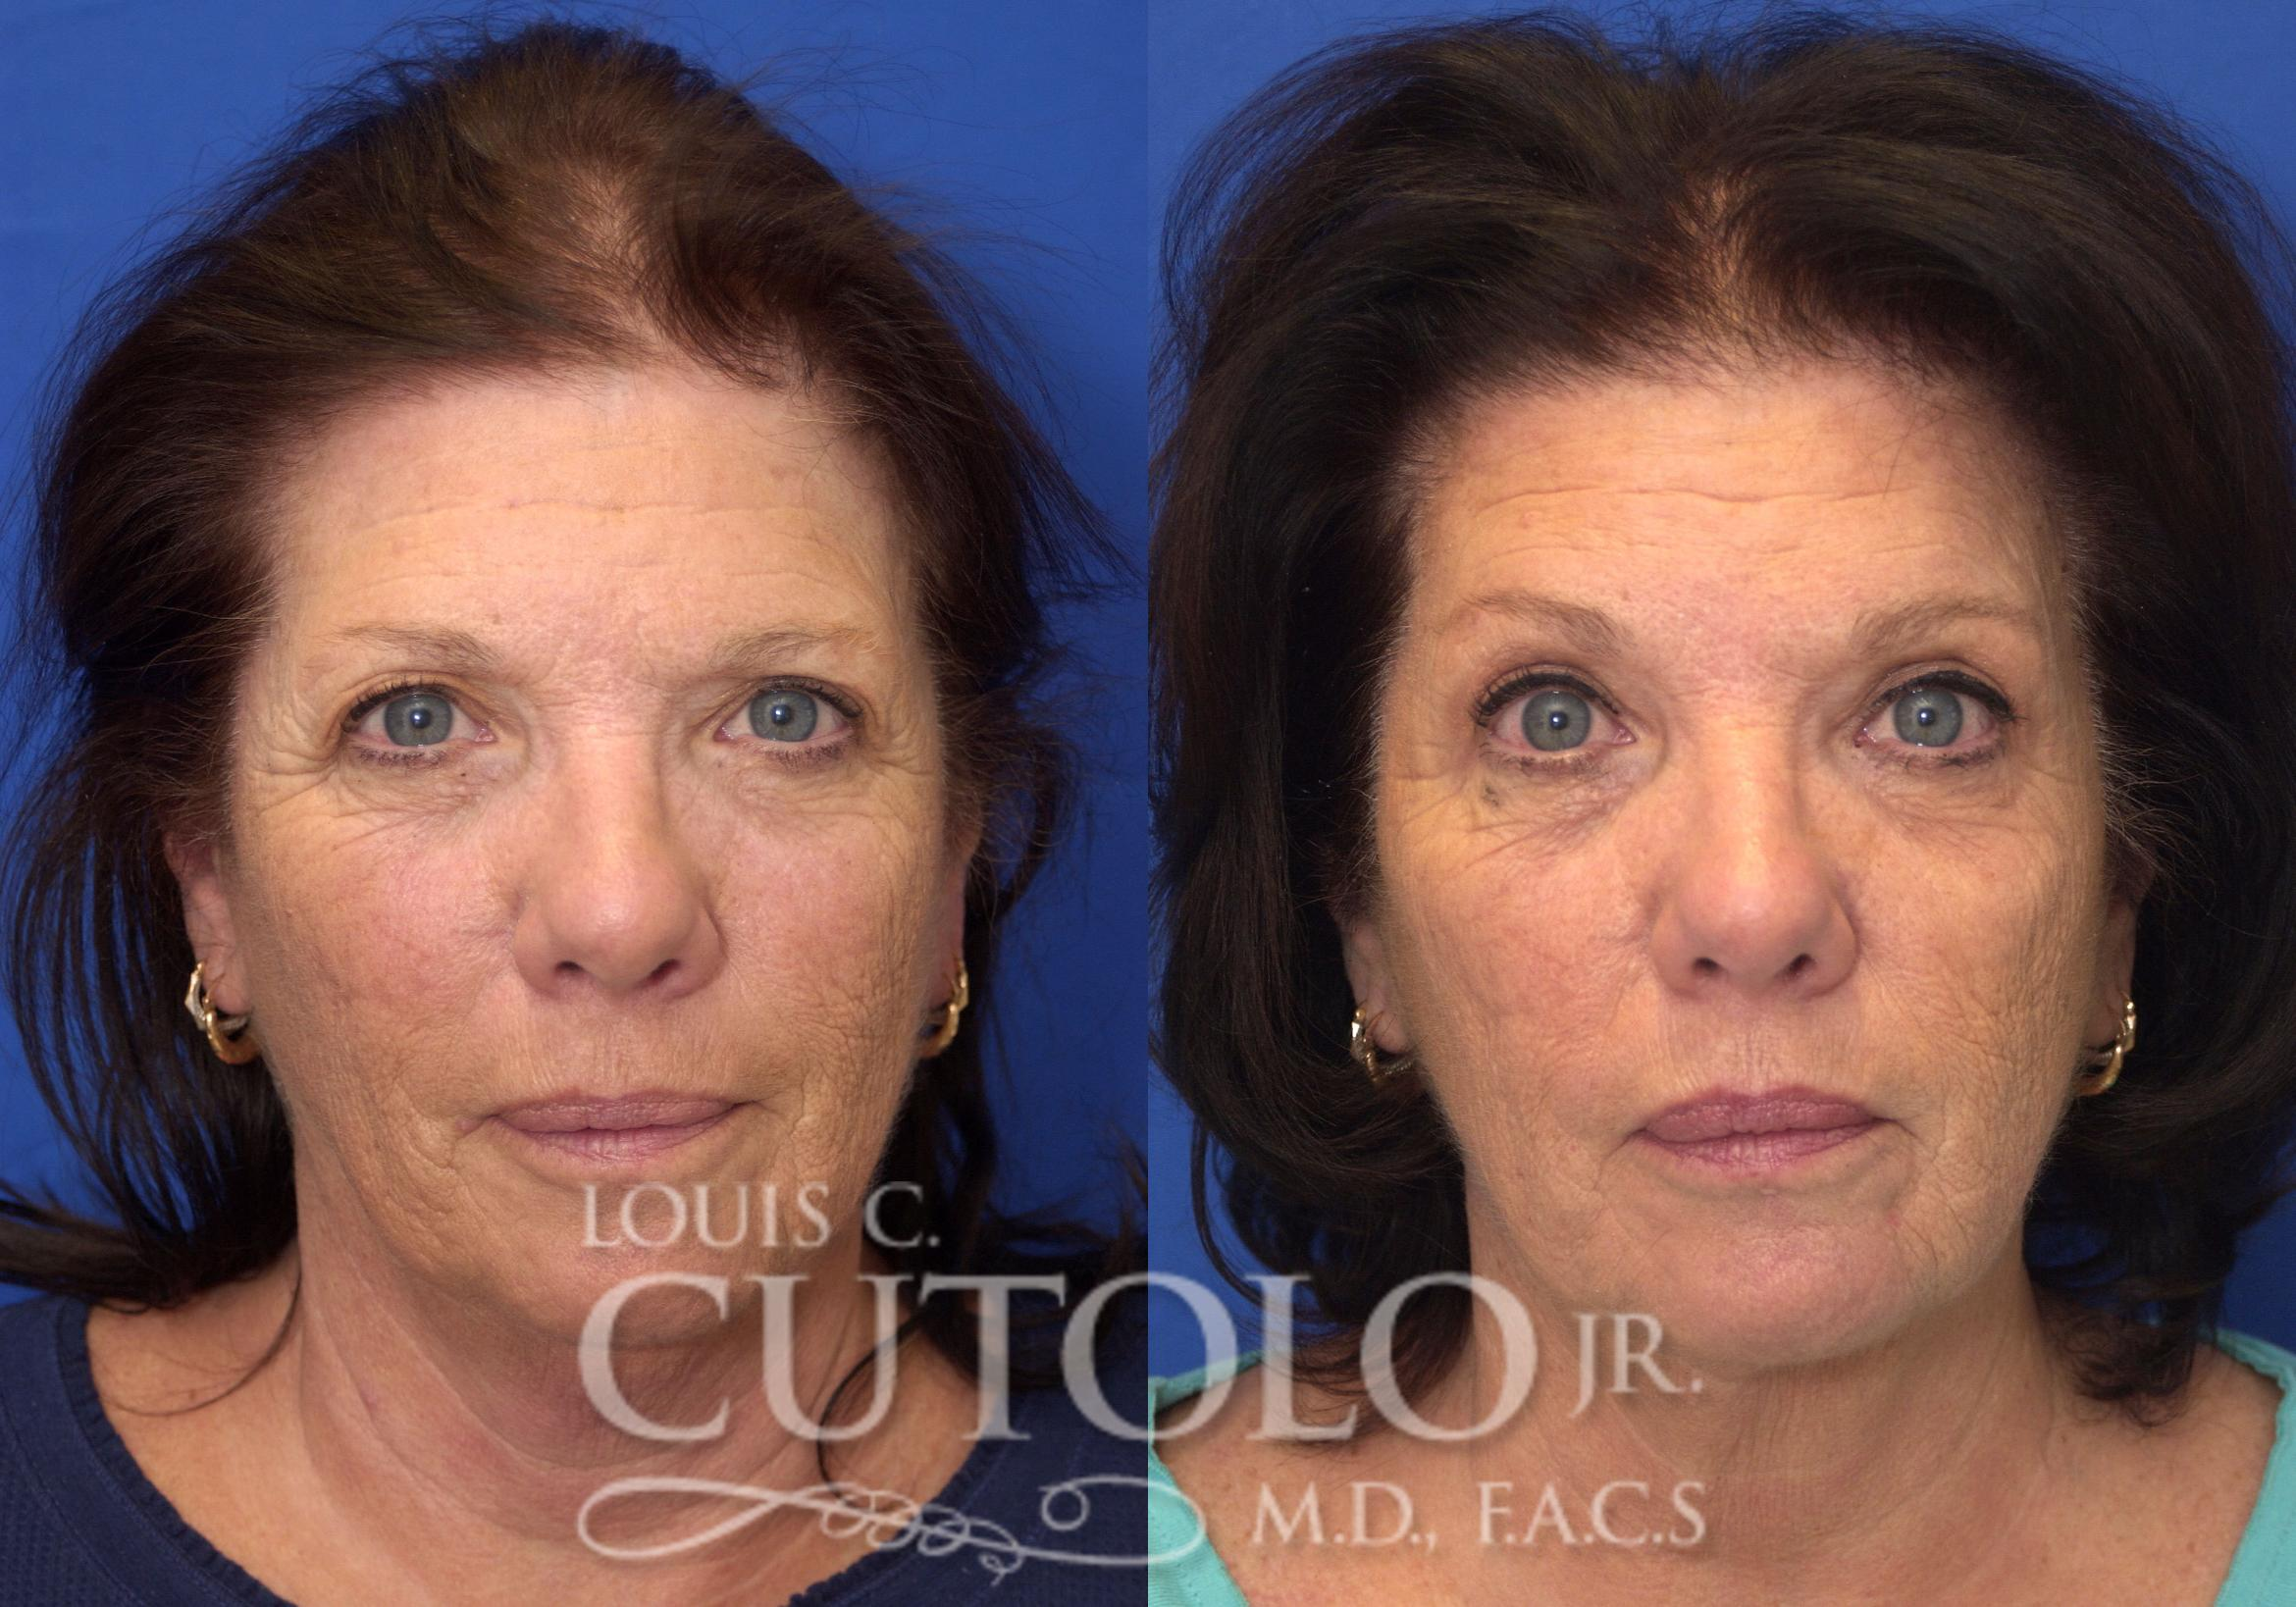 Eyelid Surgery Before & After Photo | Brooklyn, Staten Island, Queens, NY | Louis C. Cotolo, Jr., M.D., F.A.C.S.